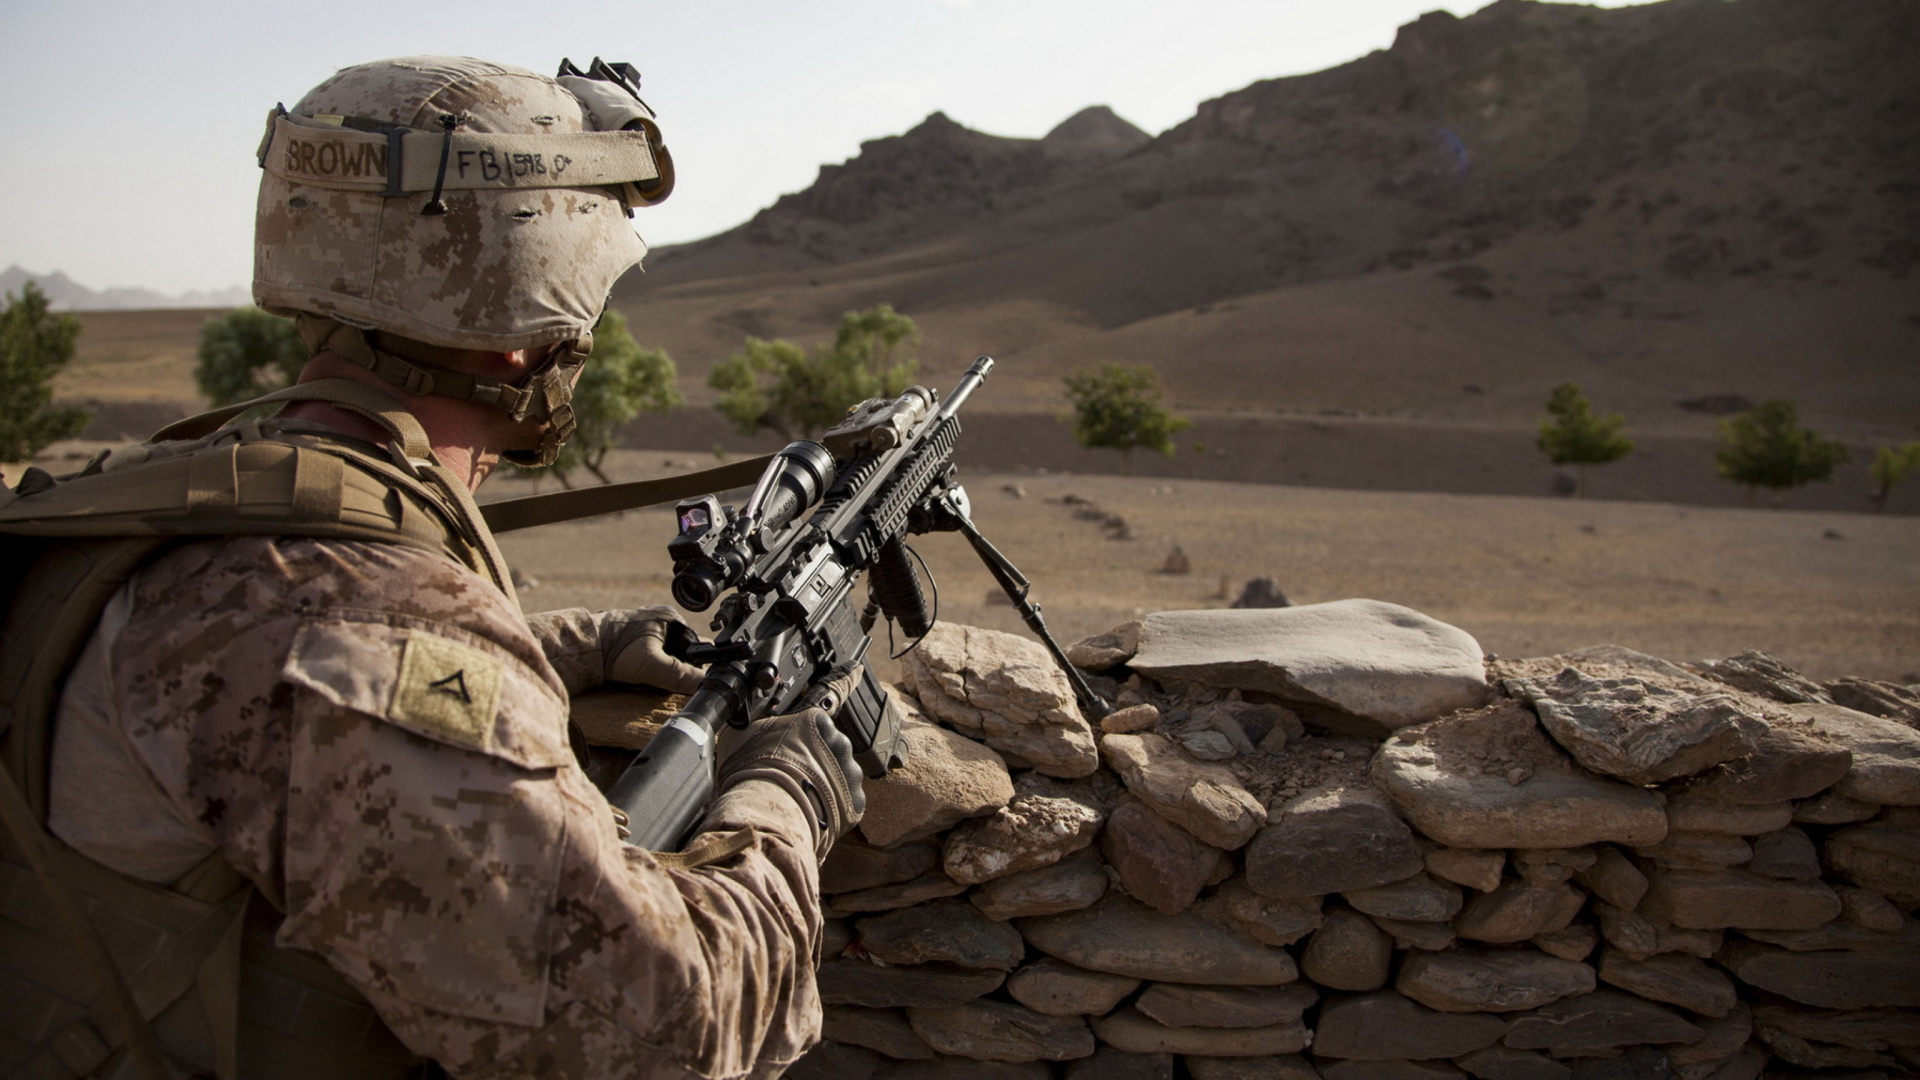 46 free usmc wallpaper and screensavers on wallpapersafari - Military screensavers wallpapers ...